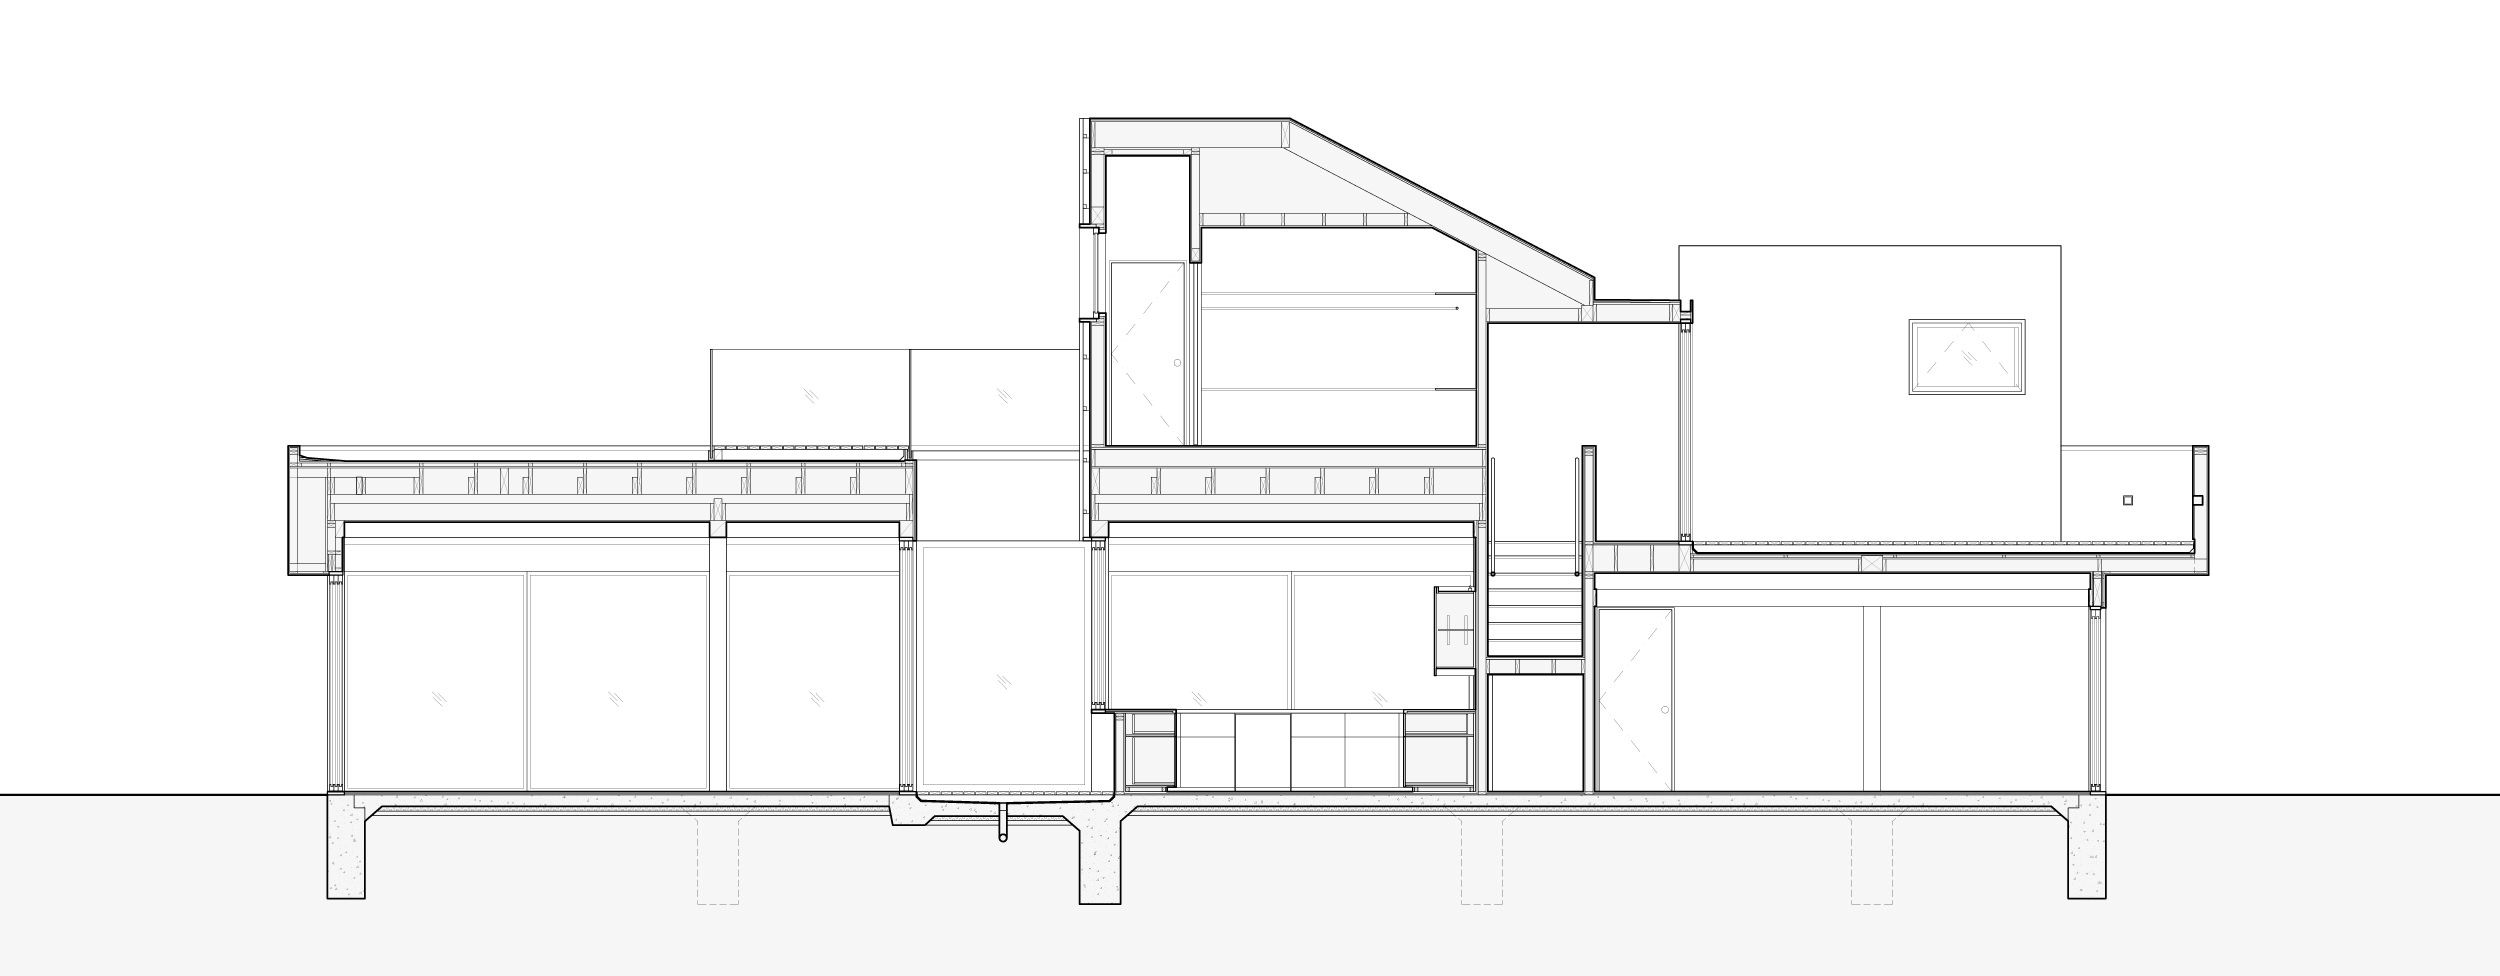 Section through the kitchen and master suite.